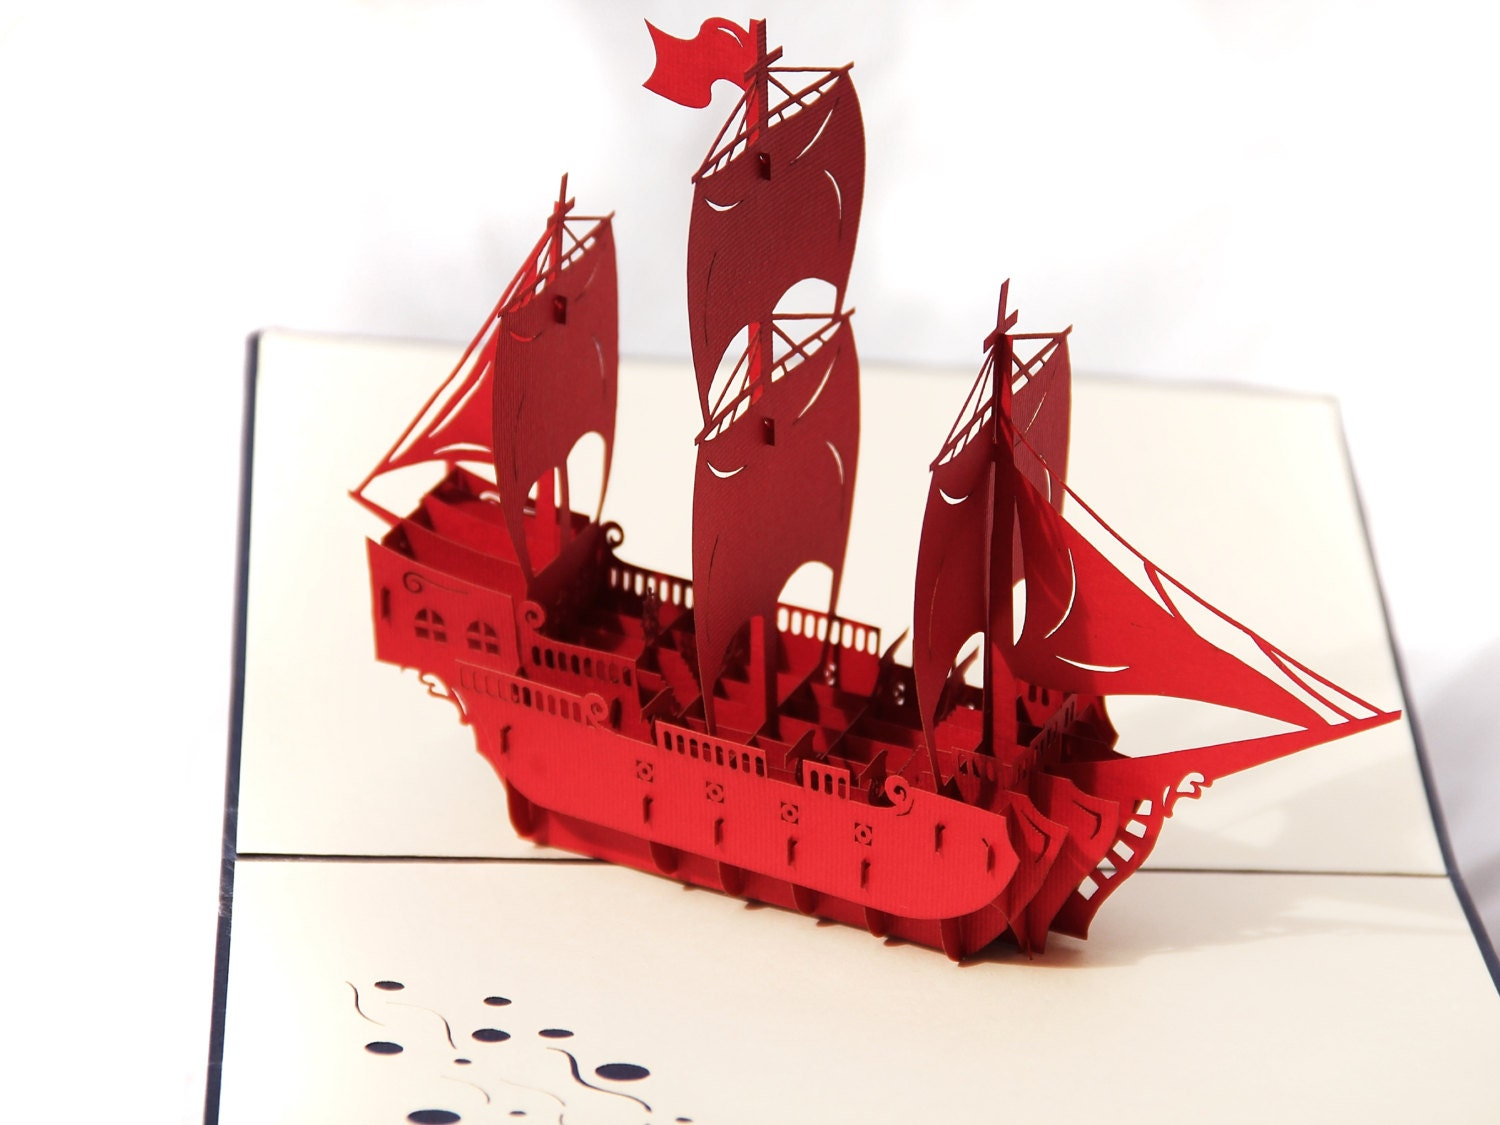 Pirate Ship Popup Greeting Card Red Boat Pop Up Paper Art